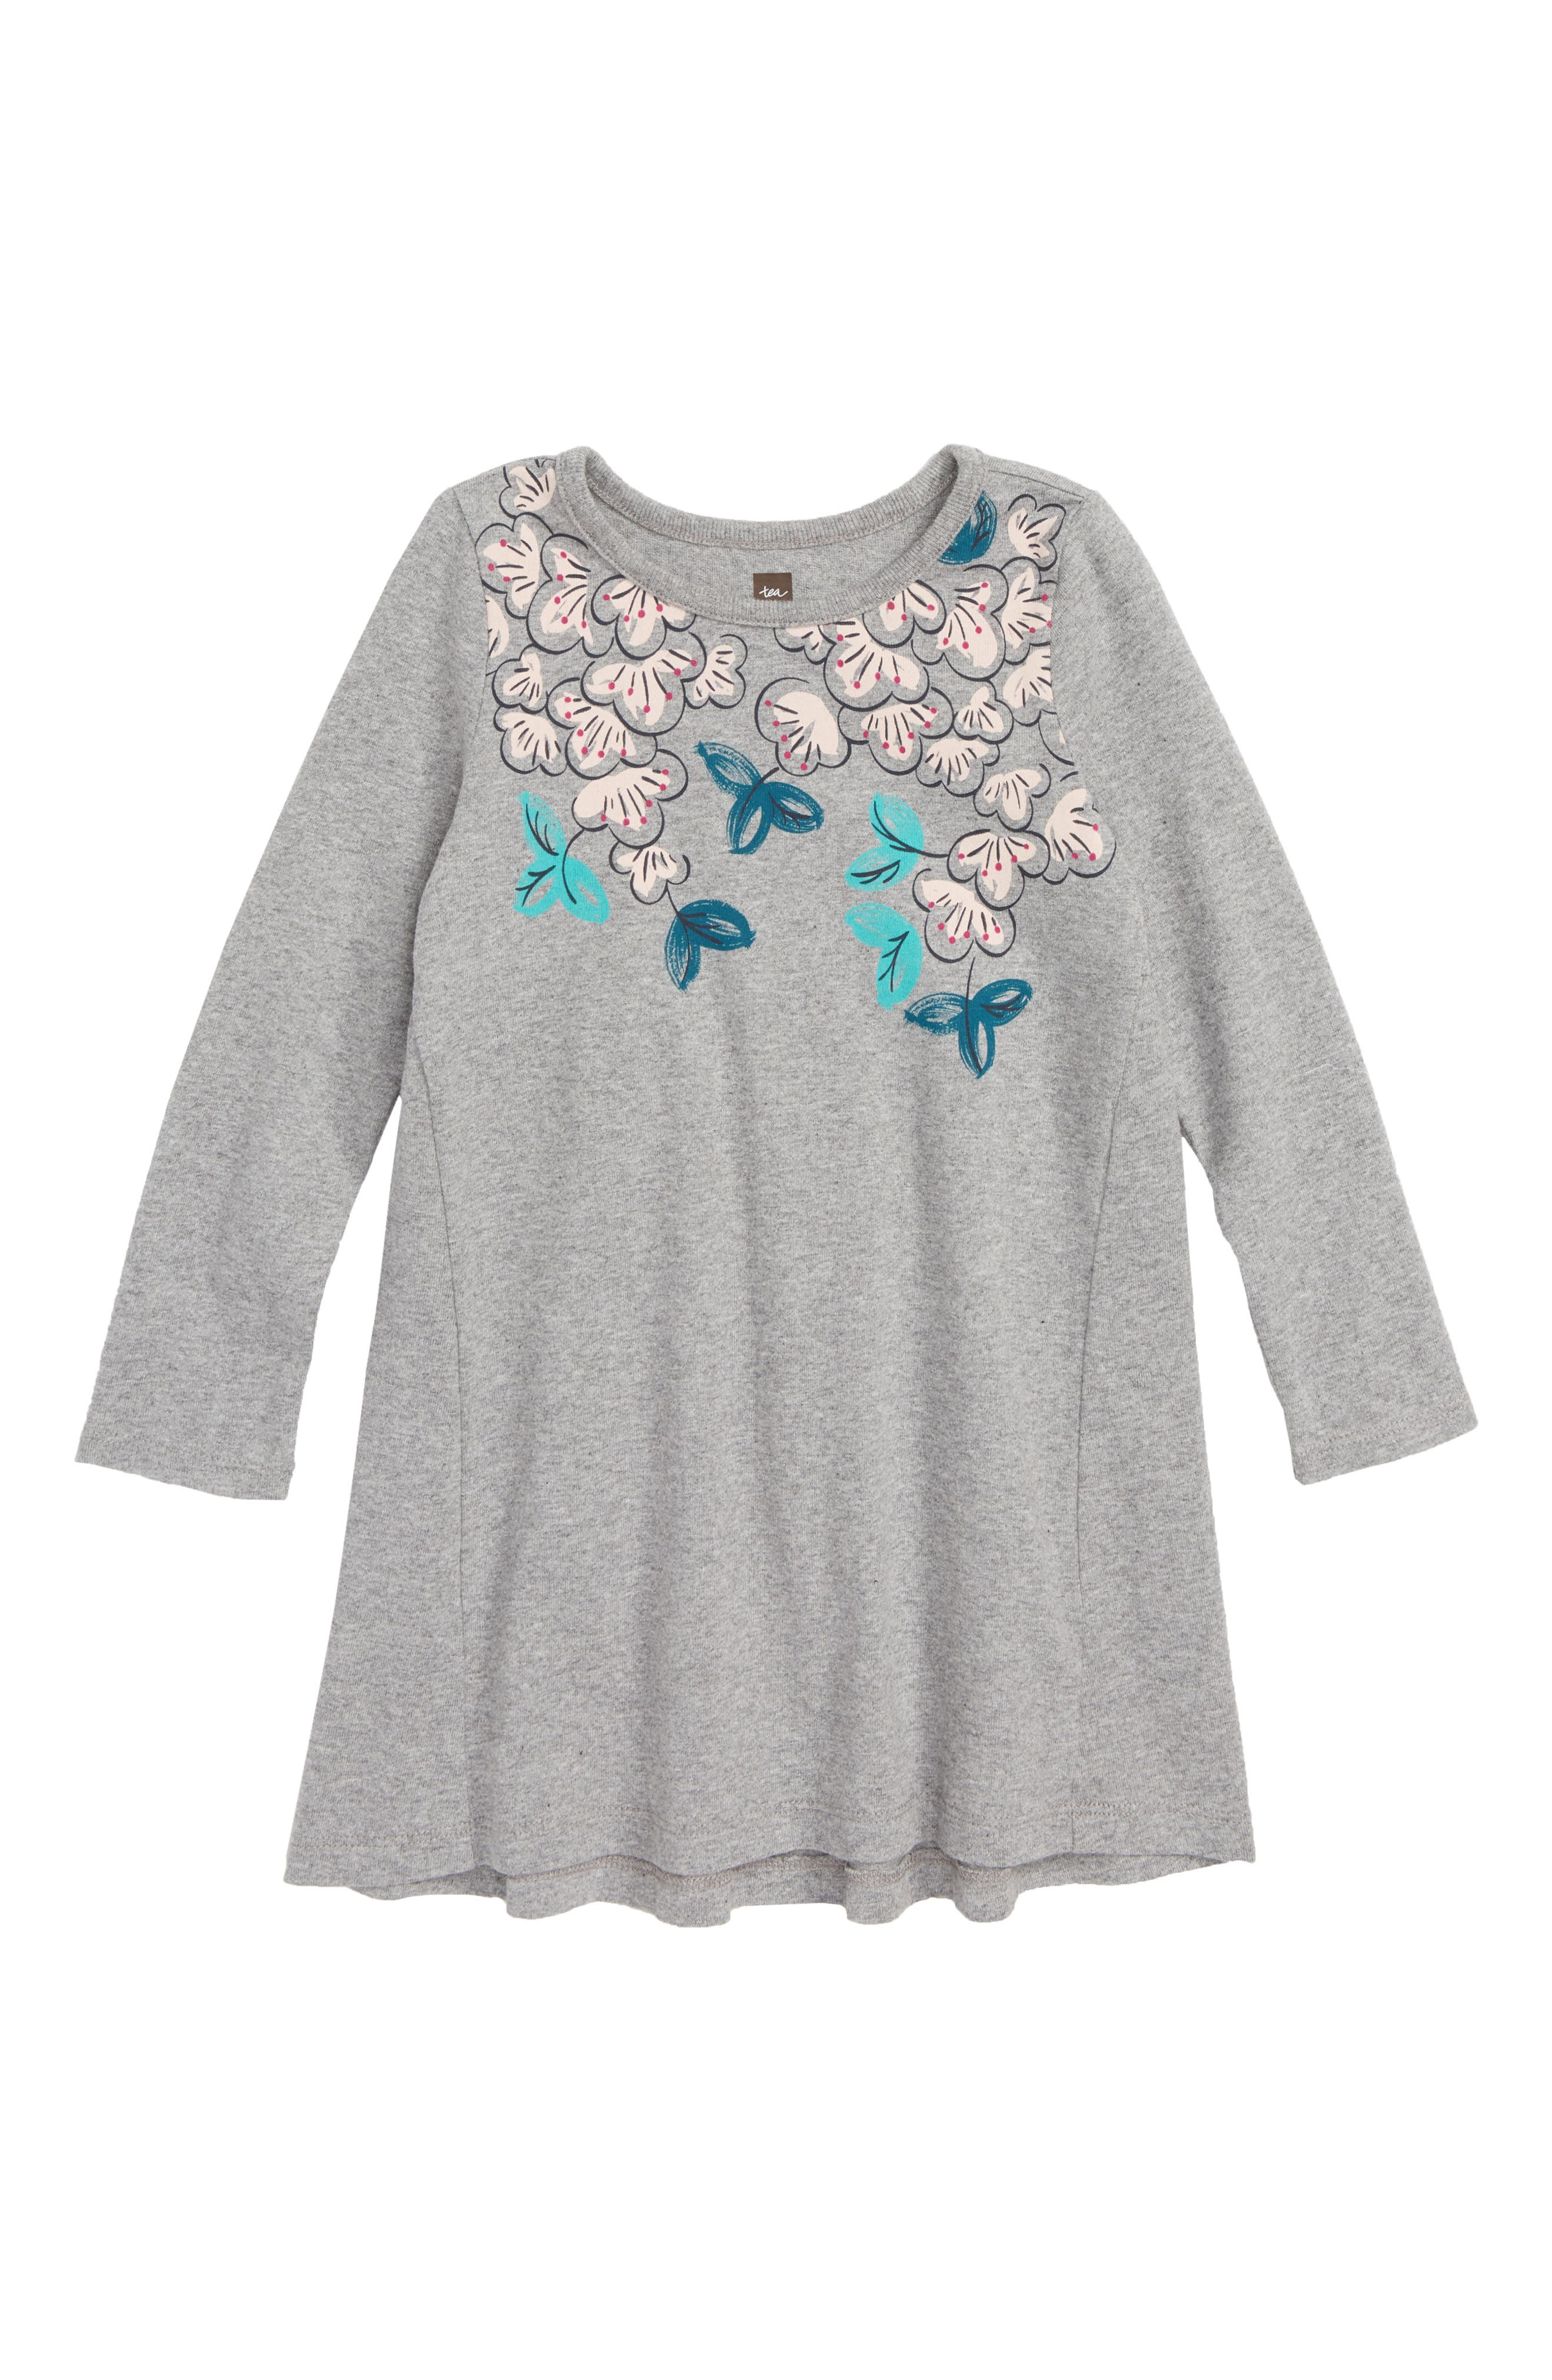 Blossoms T-Shirt Dress,                             Main thumbnail 1, color,                             MED HEATHER GREY